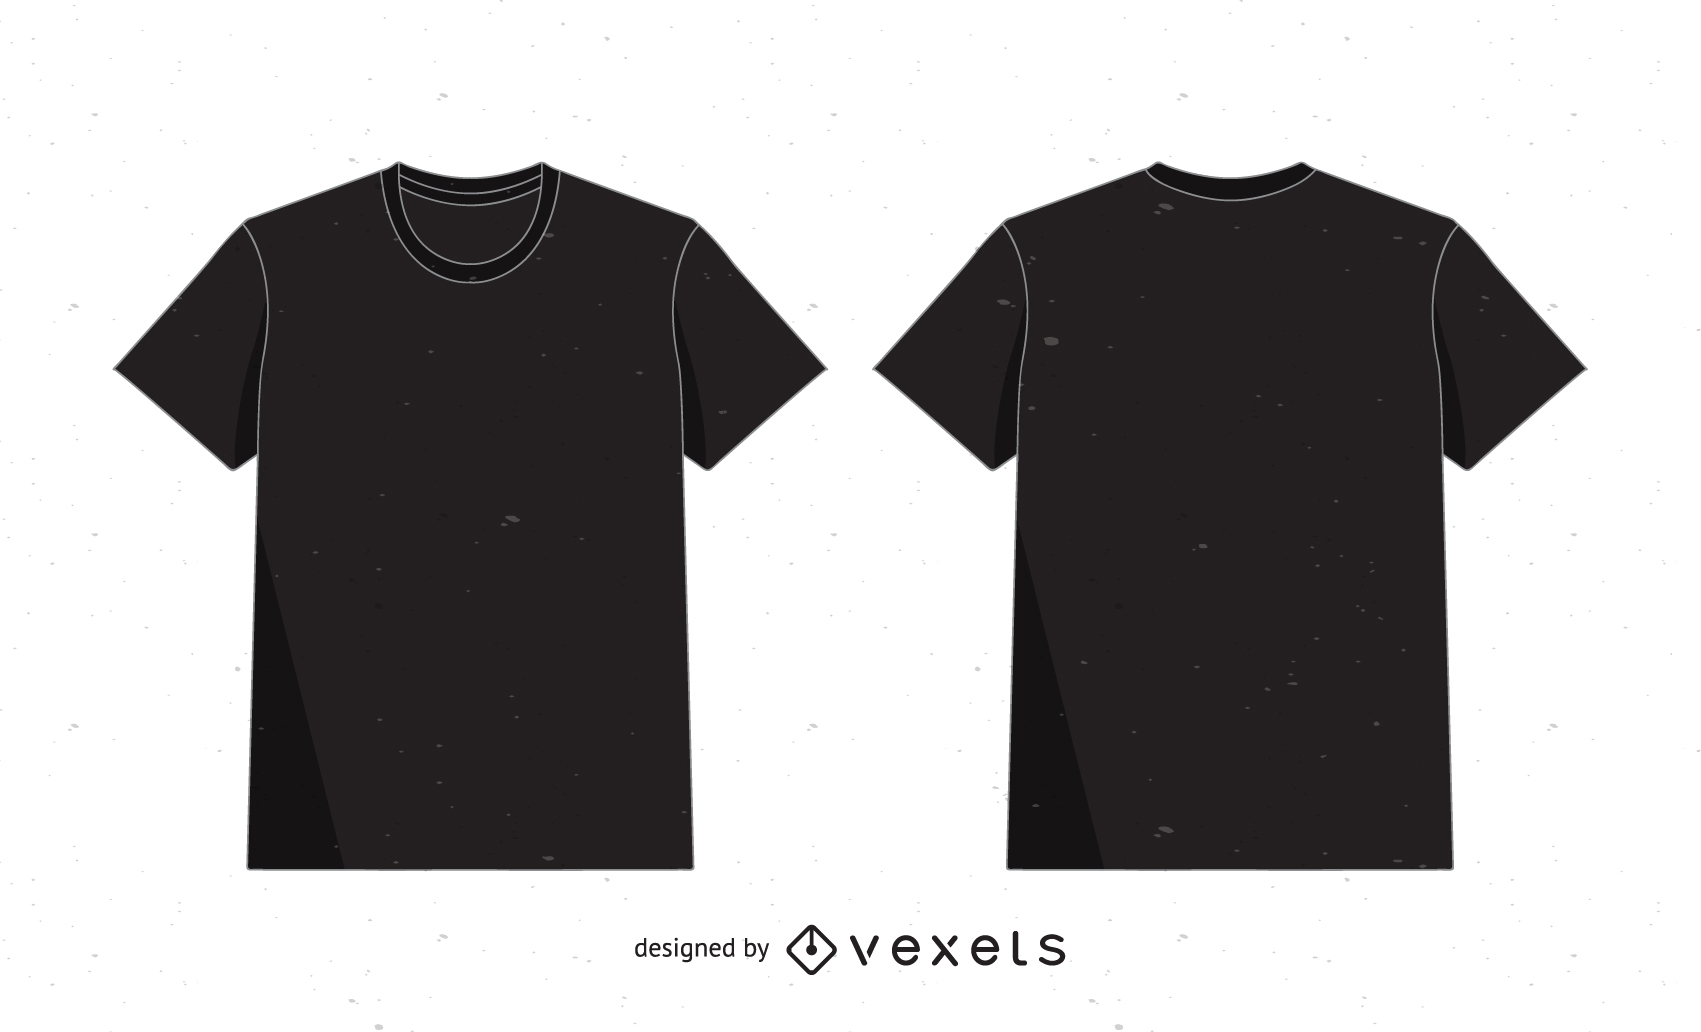 T shirt mockup template in black over white vector download for T shirt mockup vector free